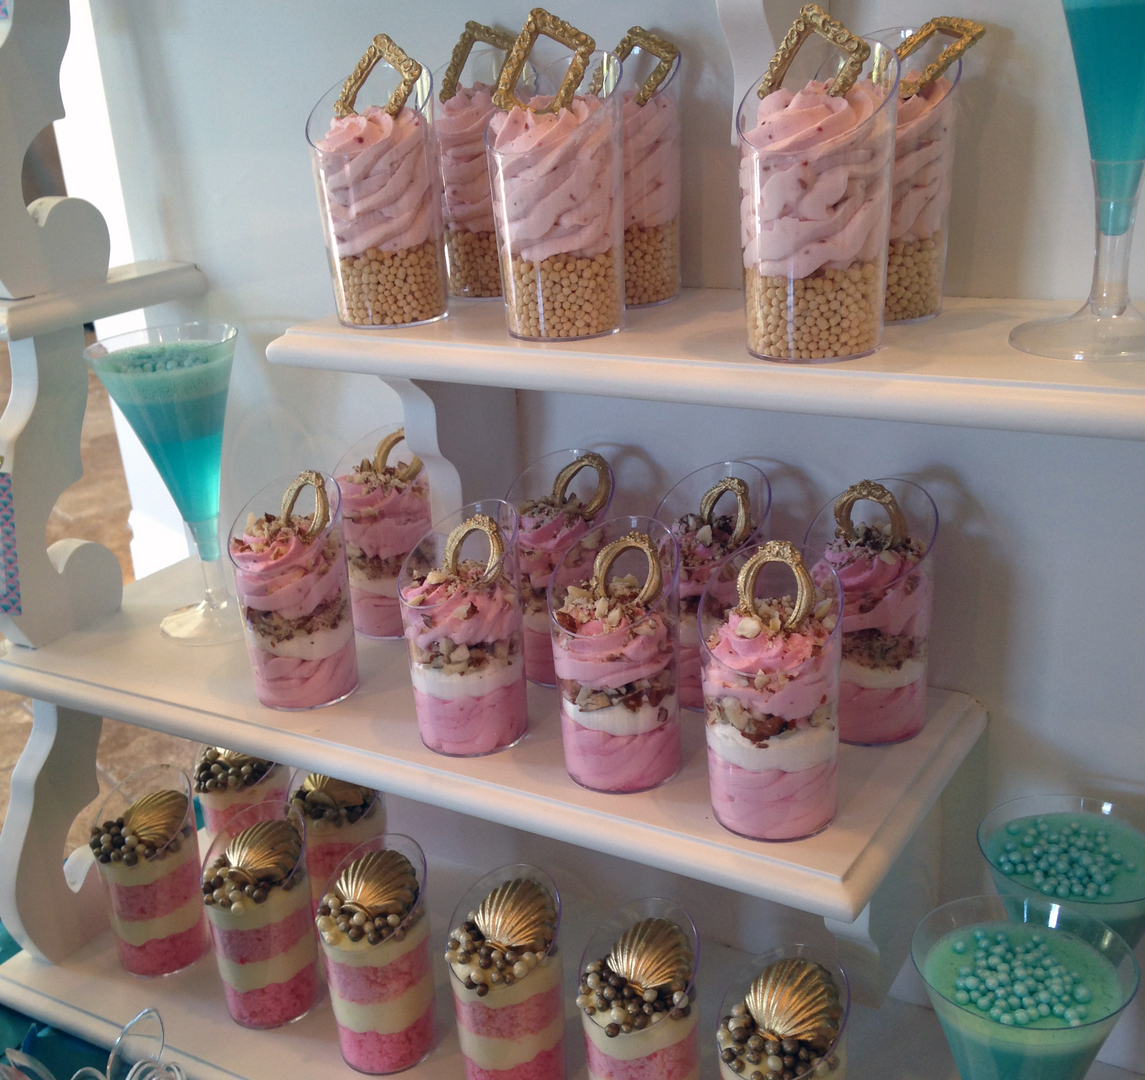 Sweetly Feature Chic Mermaid Party Sweetly Chic Events